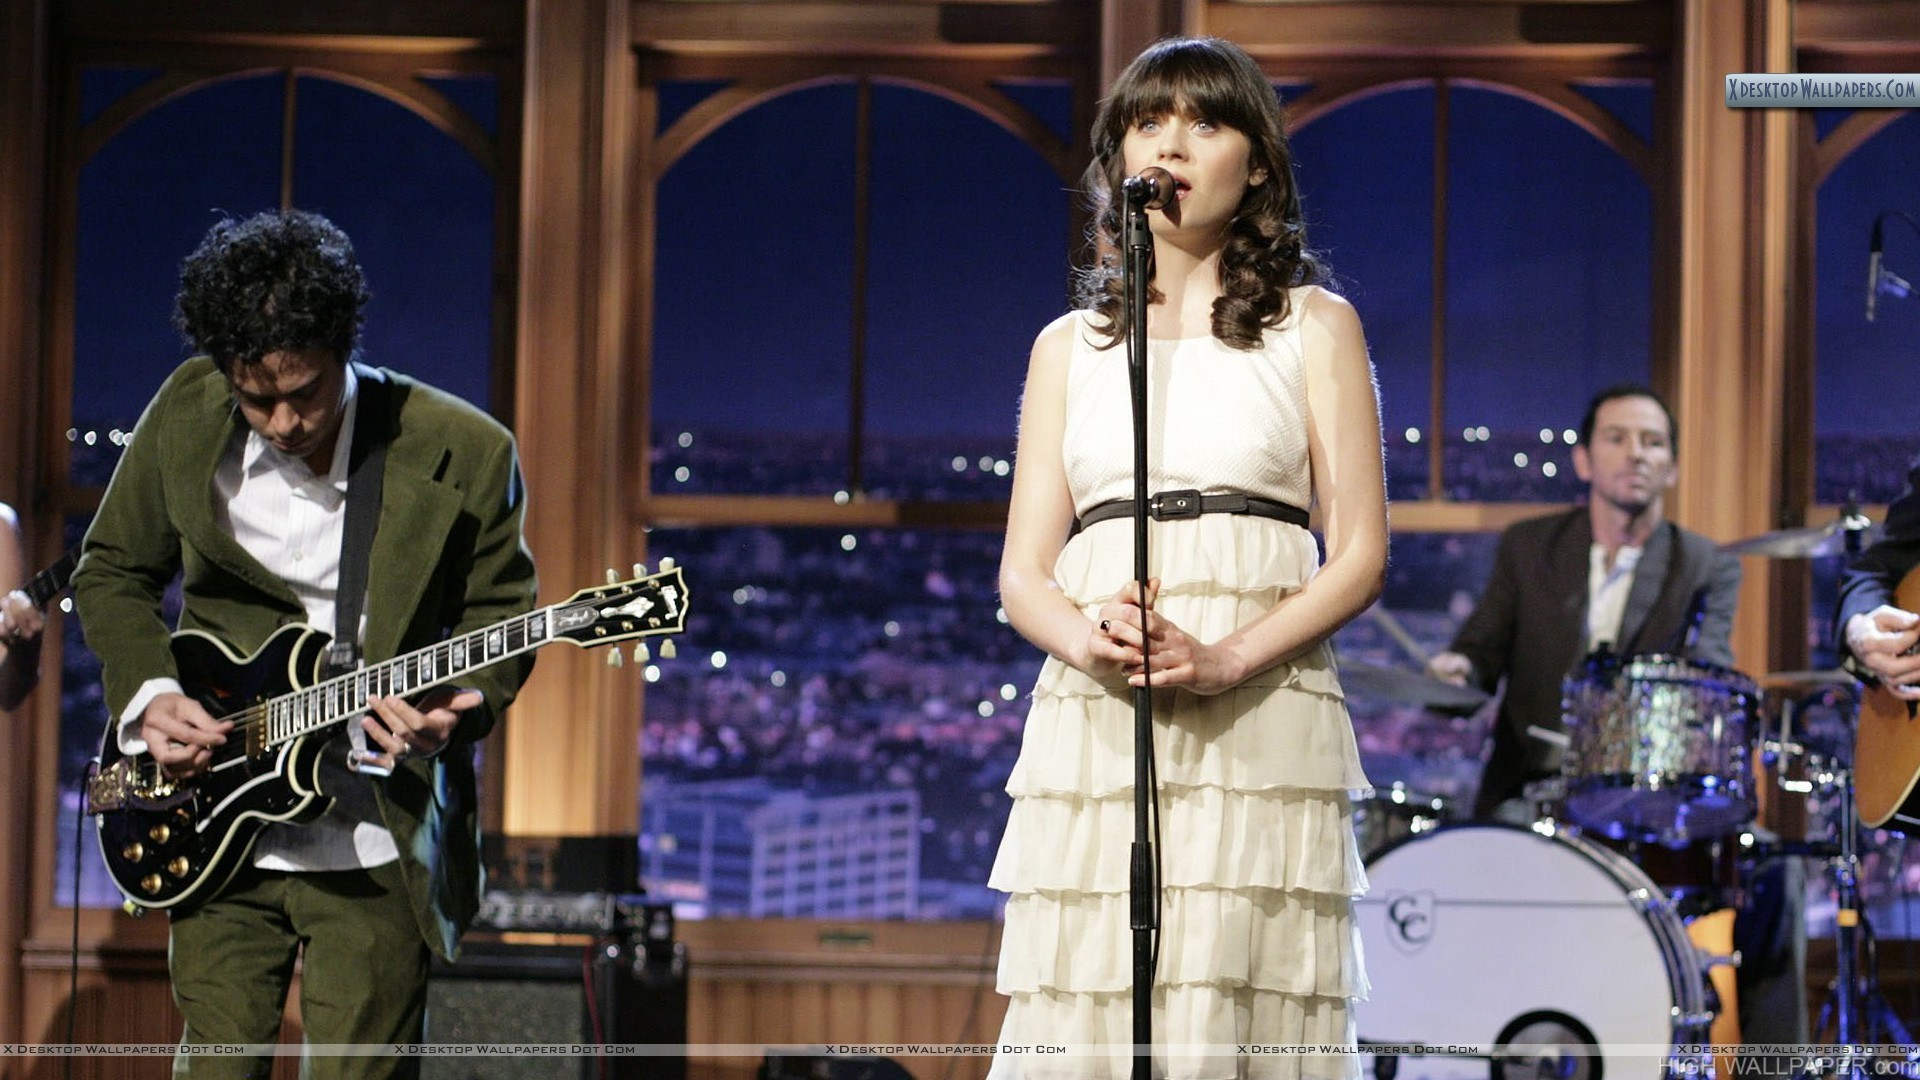 Zooey Deschanel Singing On Stage In White Dress